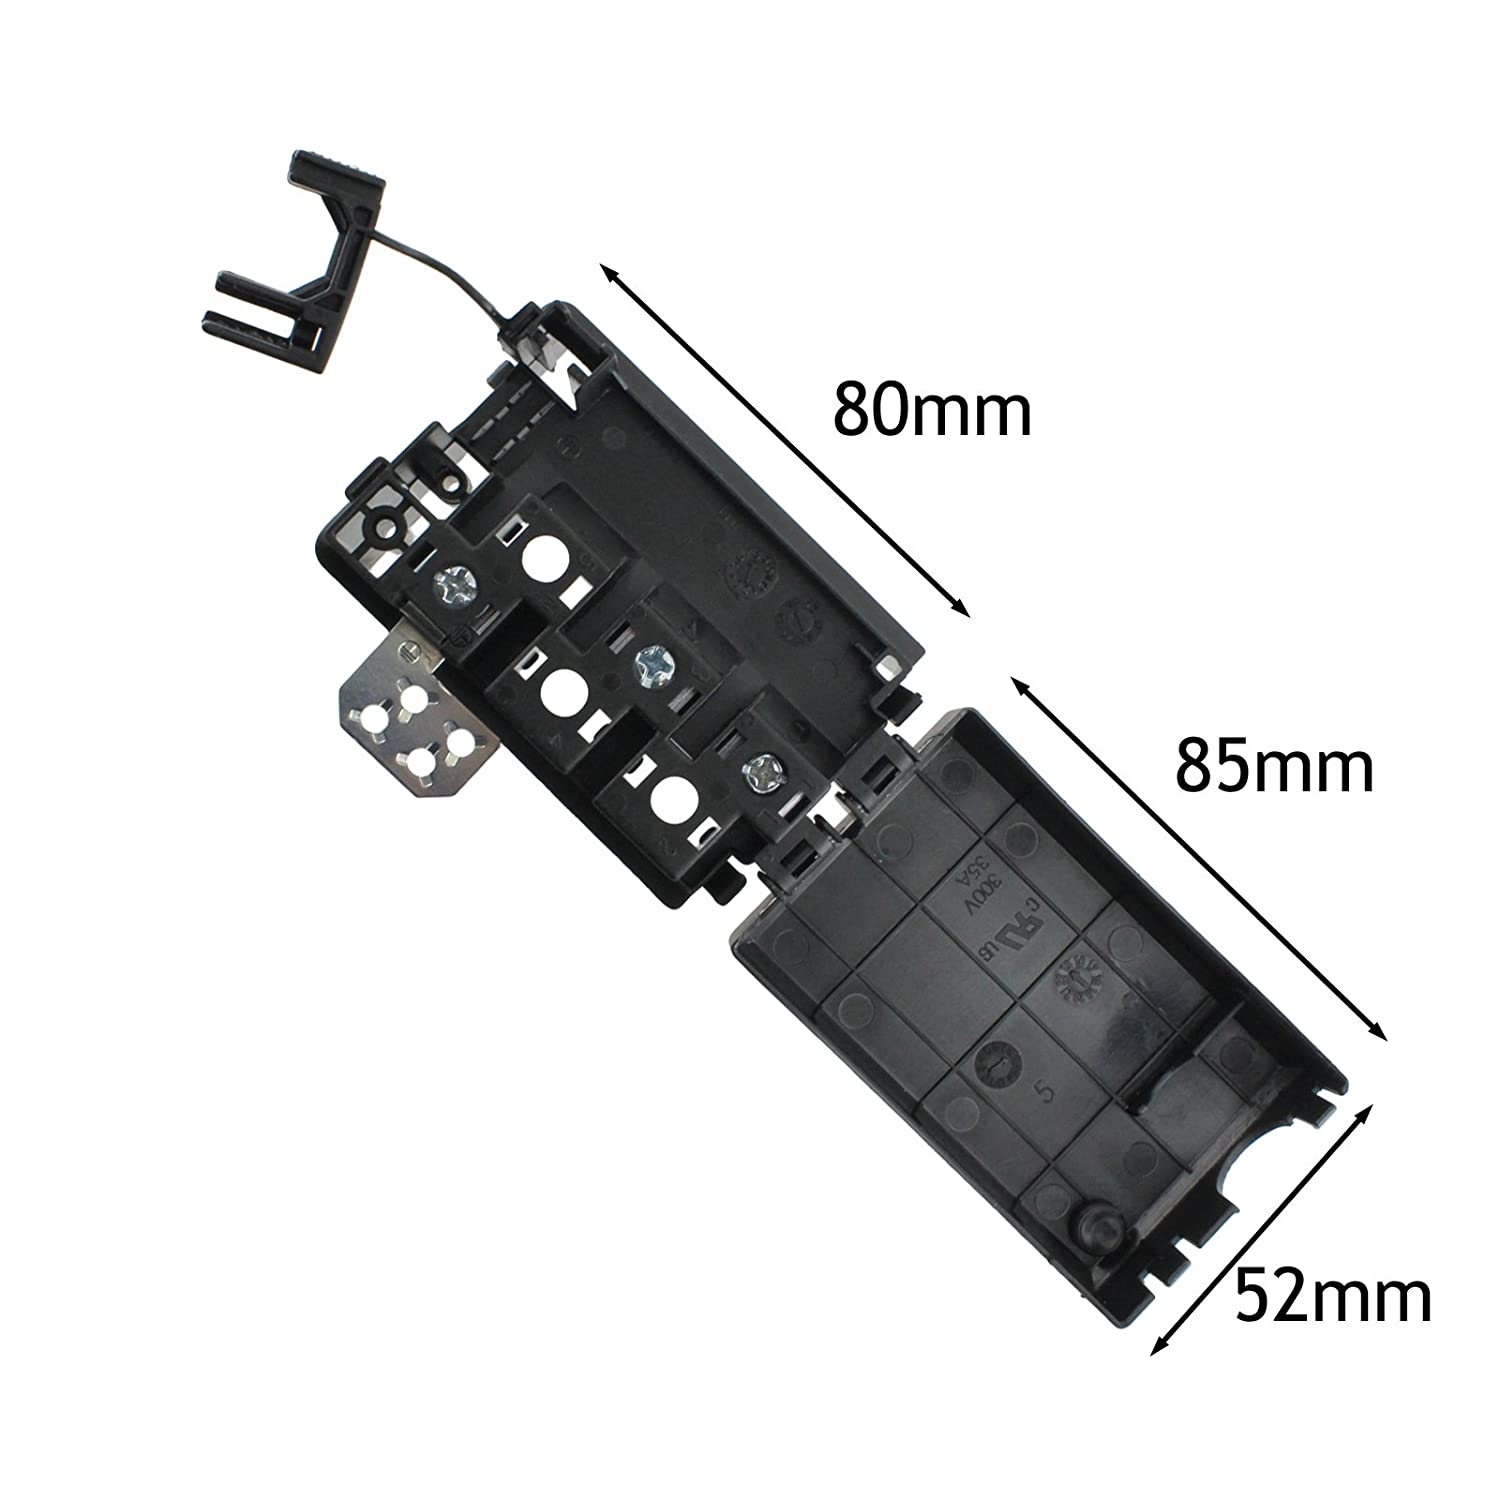 amazon com indesit oven cooker hob mains terminal block junction rh amazon com Electrical Junction Box Installation Telephone Wiring Junction Box